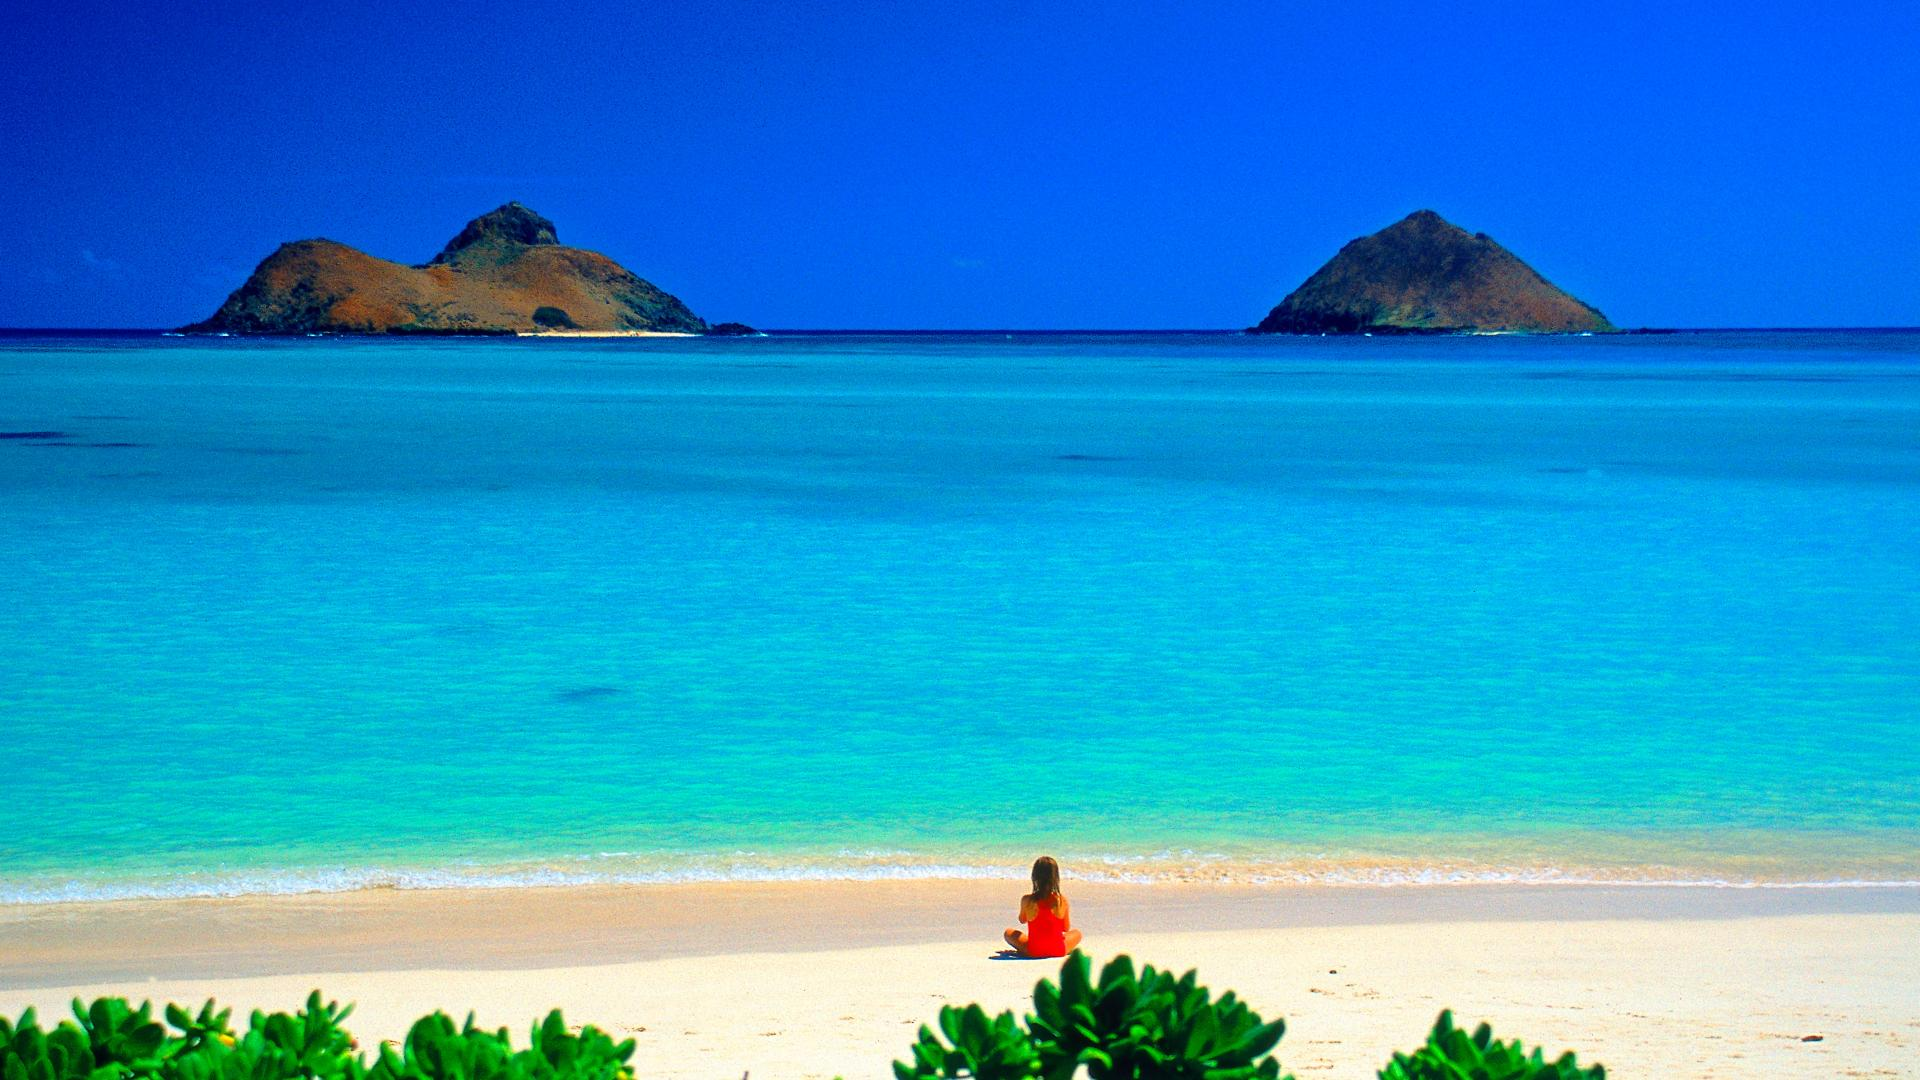 Cool Backgrounds Beach Hawaii 1920x1080px Wallp 3162   bwallescom 1920x1080